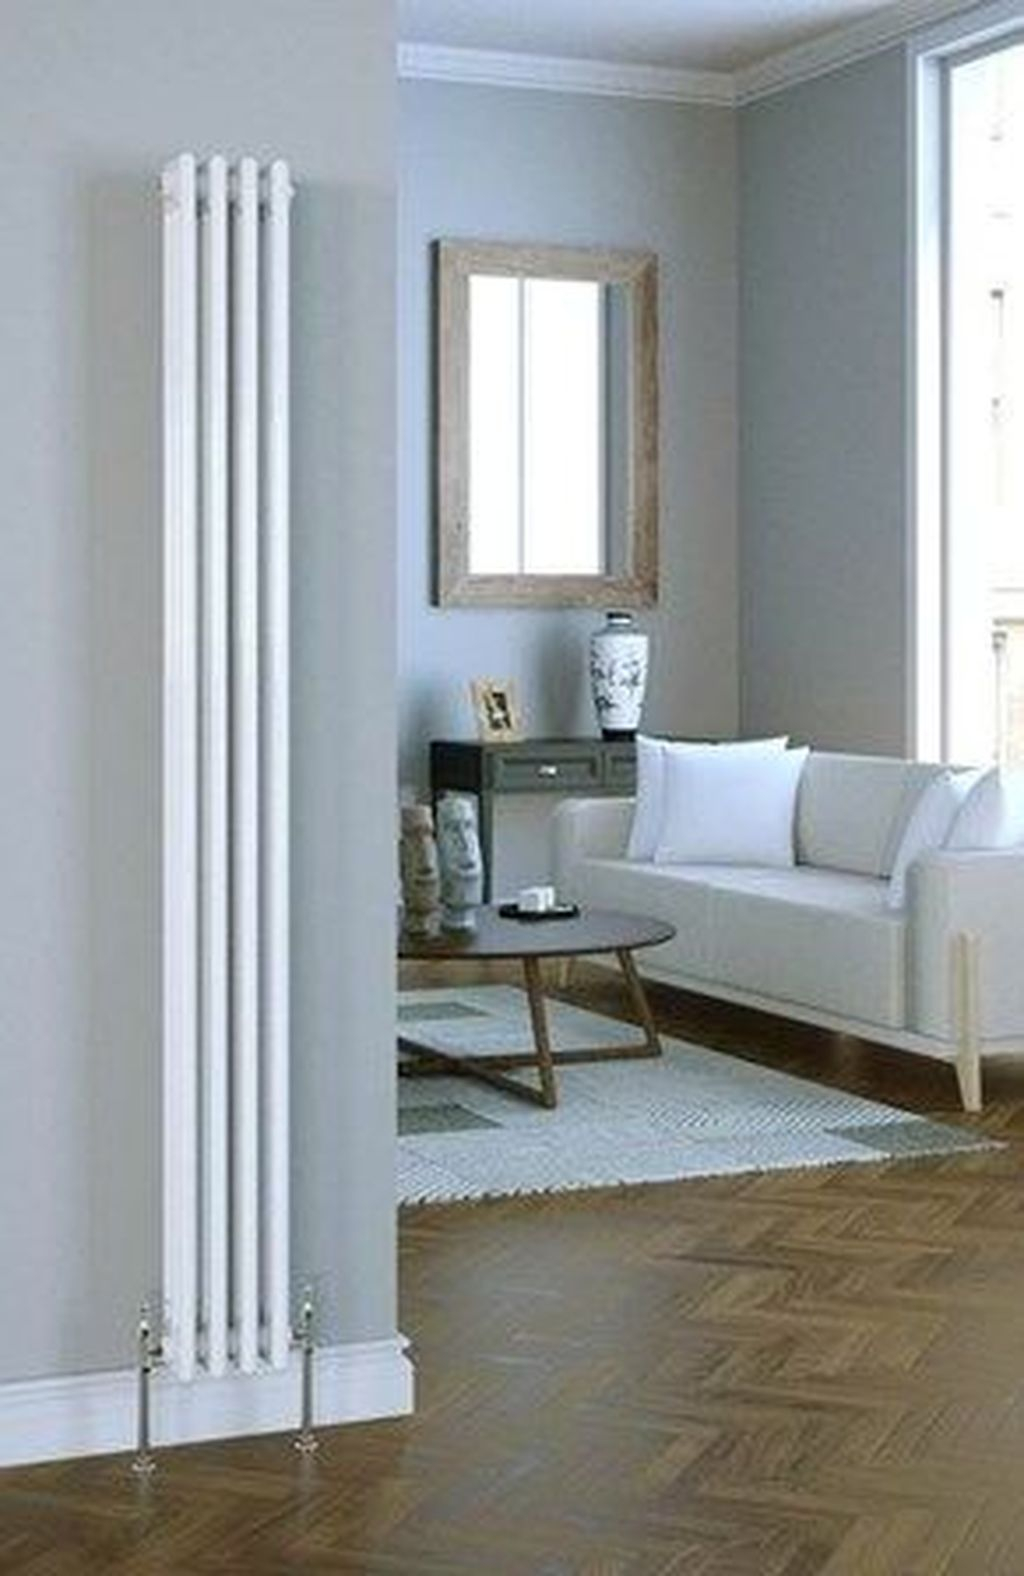 Inexpensive Radiators Design Ideas That Will Spruce Up Your Space 28